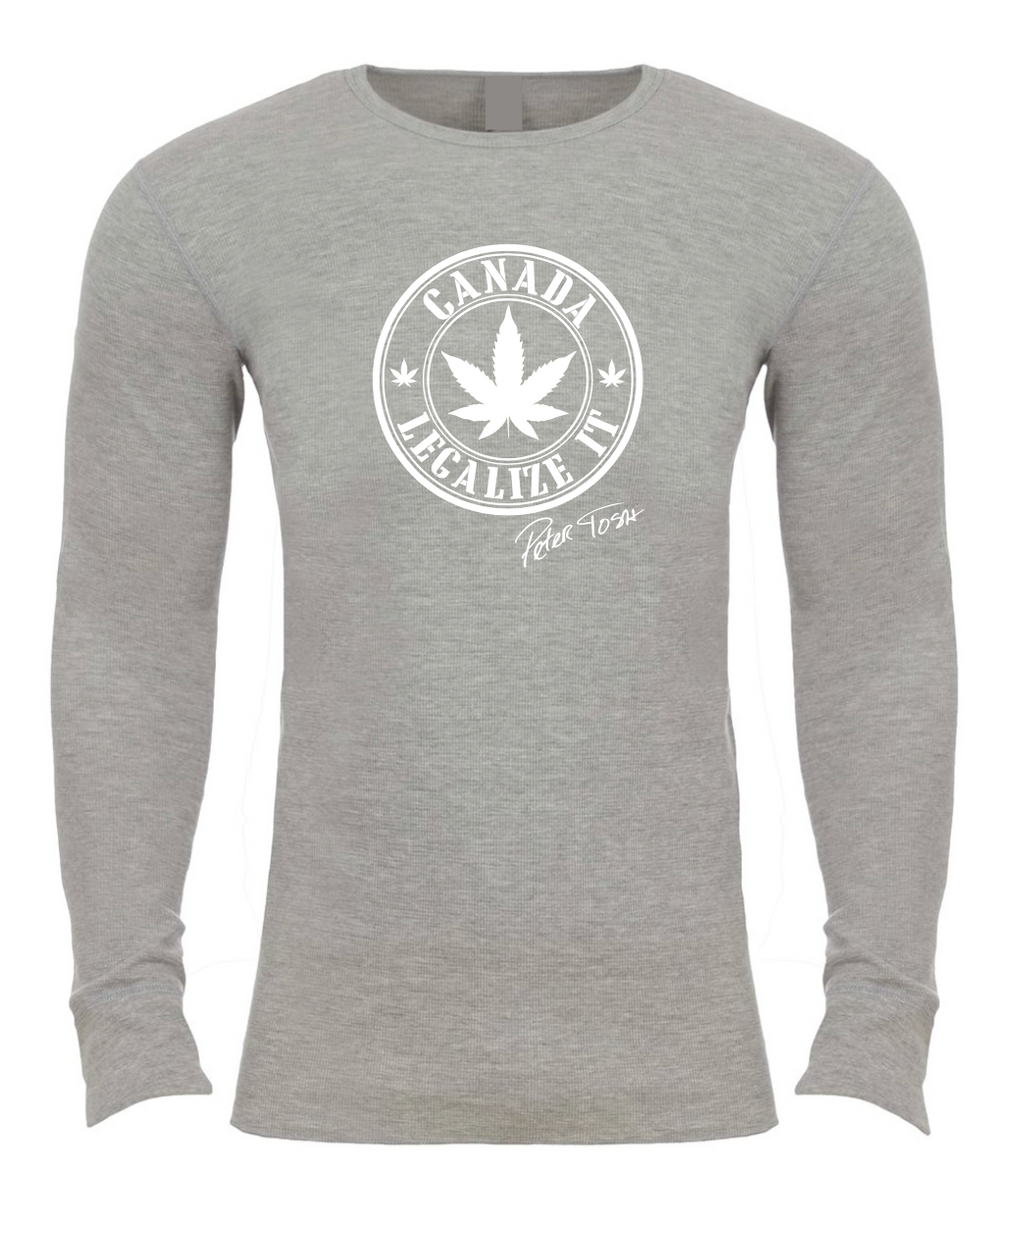 Peter Tosh Legalize It Canada Thermal - Heather Gray